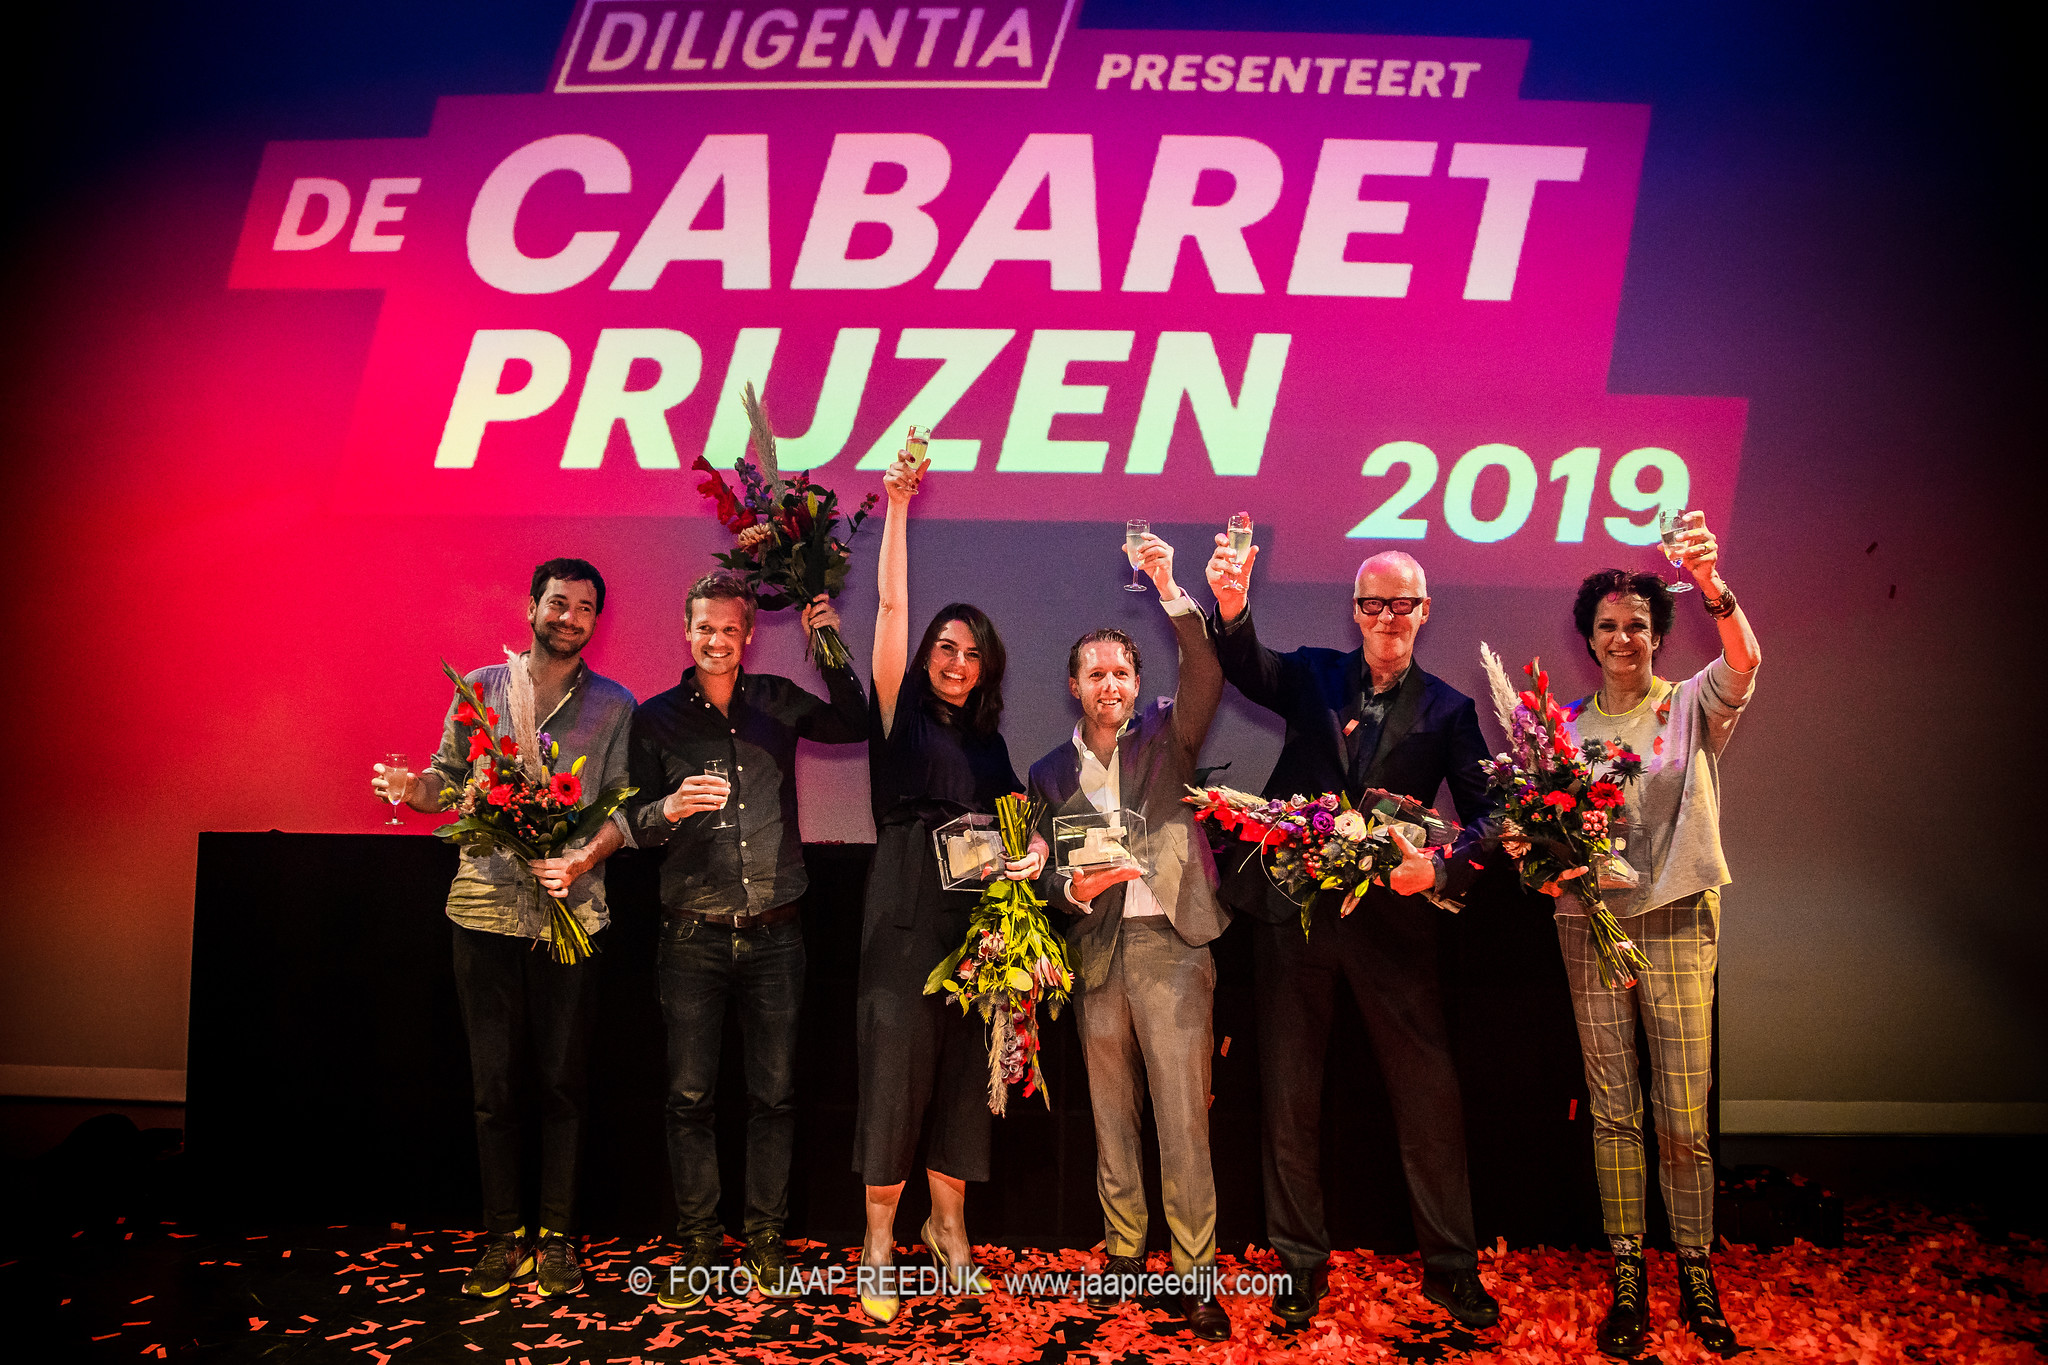 @ Theater Diligentia, the Hague, after winning Poelifinario 2019